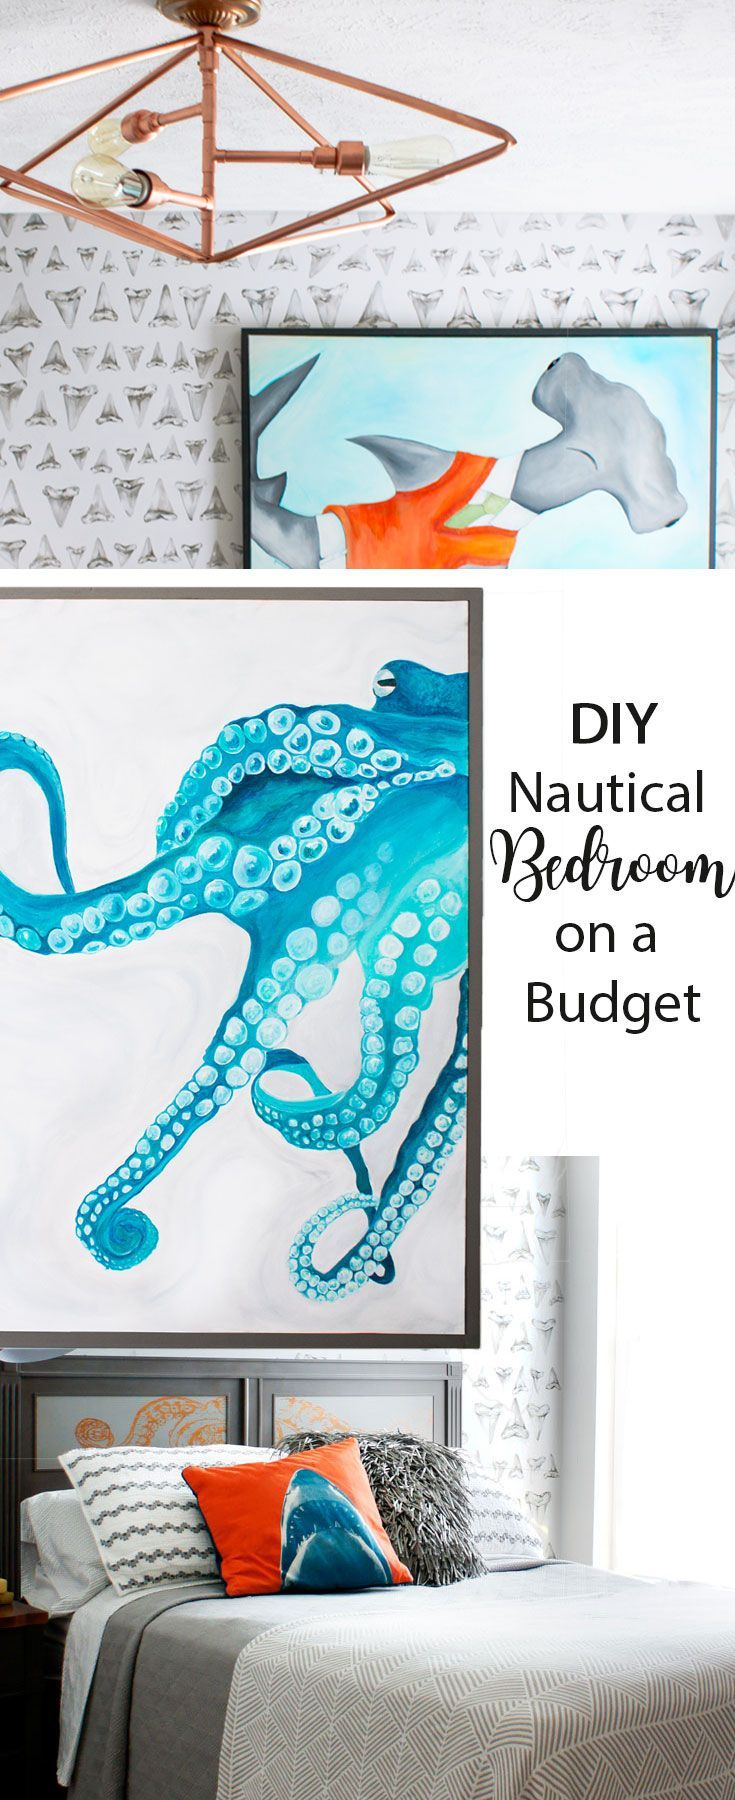 Fabulous DIY Nautical shark theme bedroom makeover with lots of DIY ideas!  DIY Copper Pipe Ceiling light, DIY Copper Pipe Desk, DIY Furniture Makeover and DIY  hand painted wall and art.